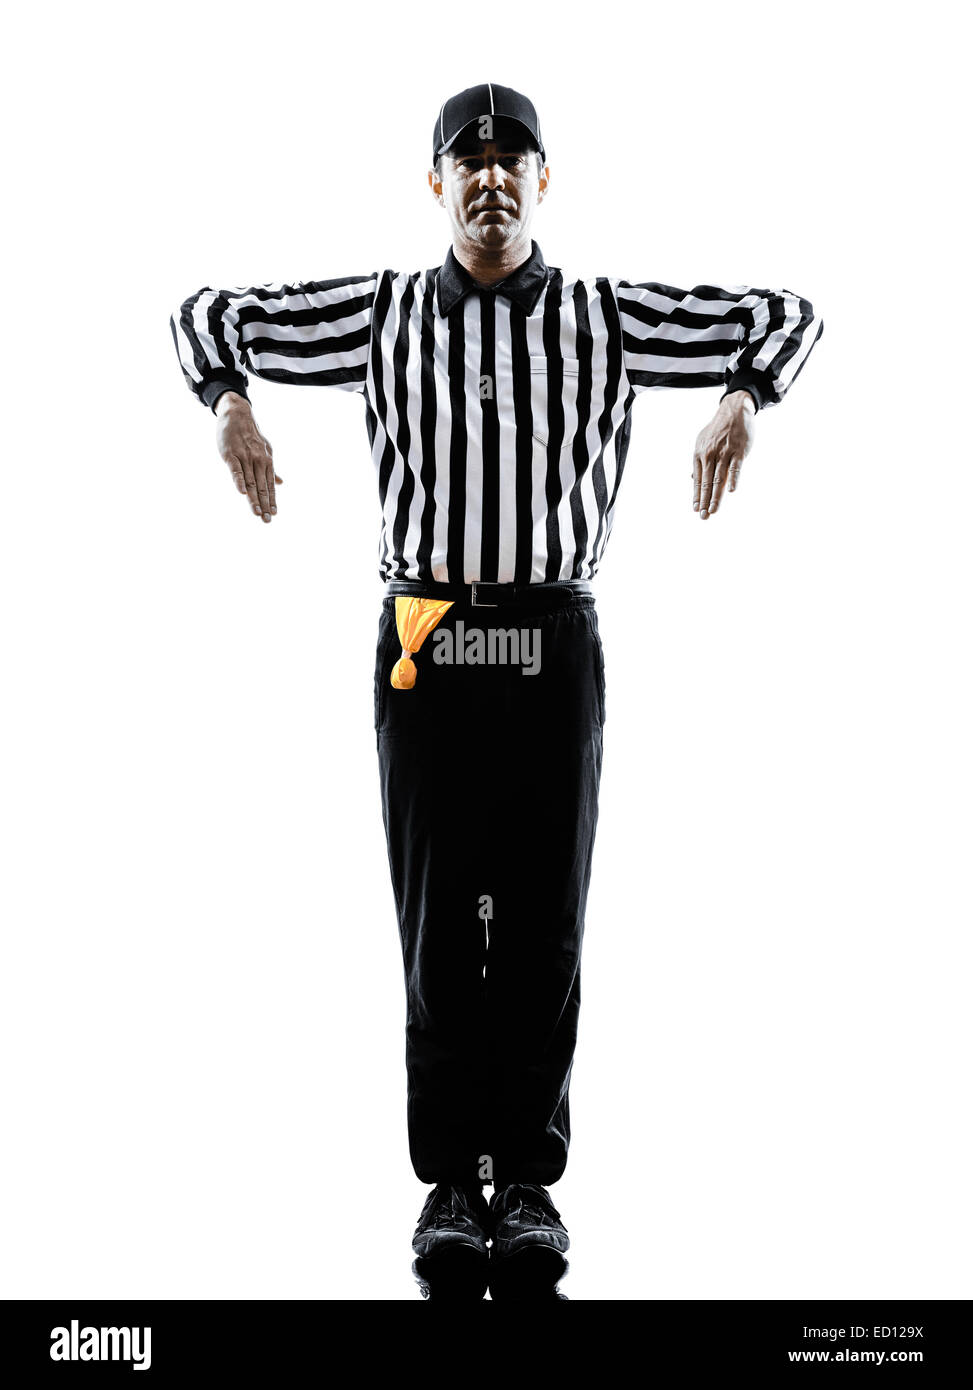 american football referee gestures illegal shift in silhouette on white background - Stock Image